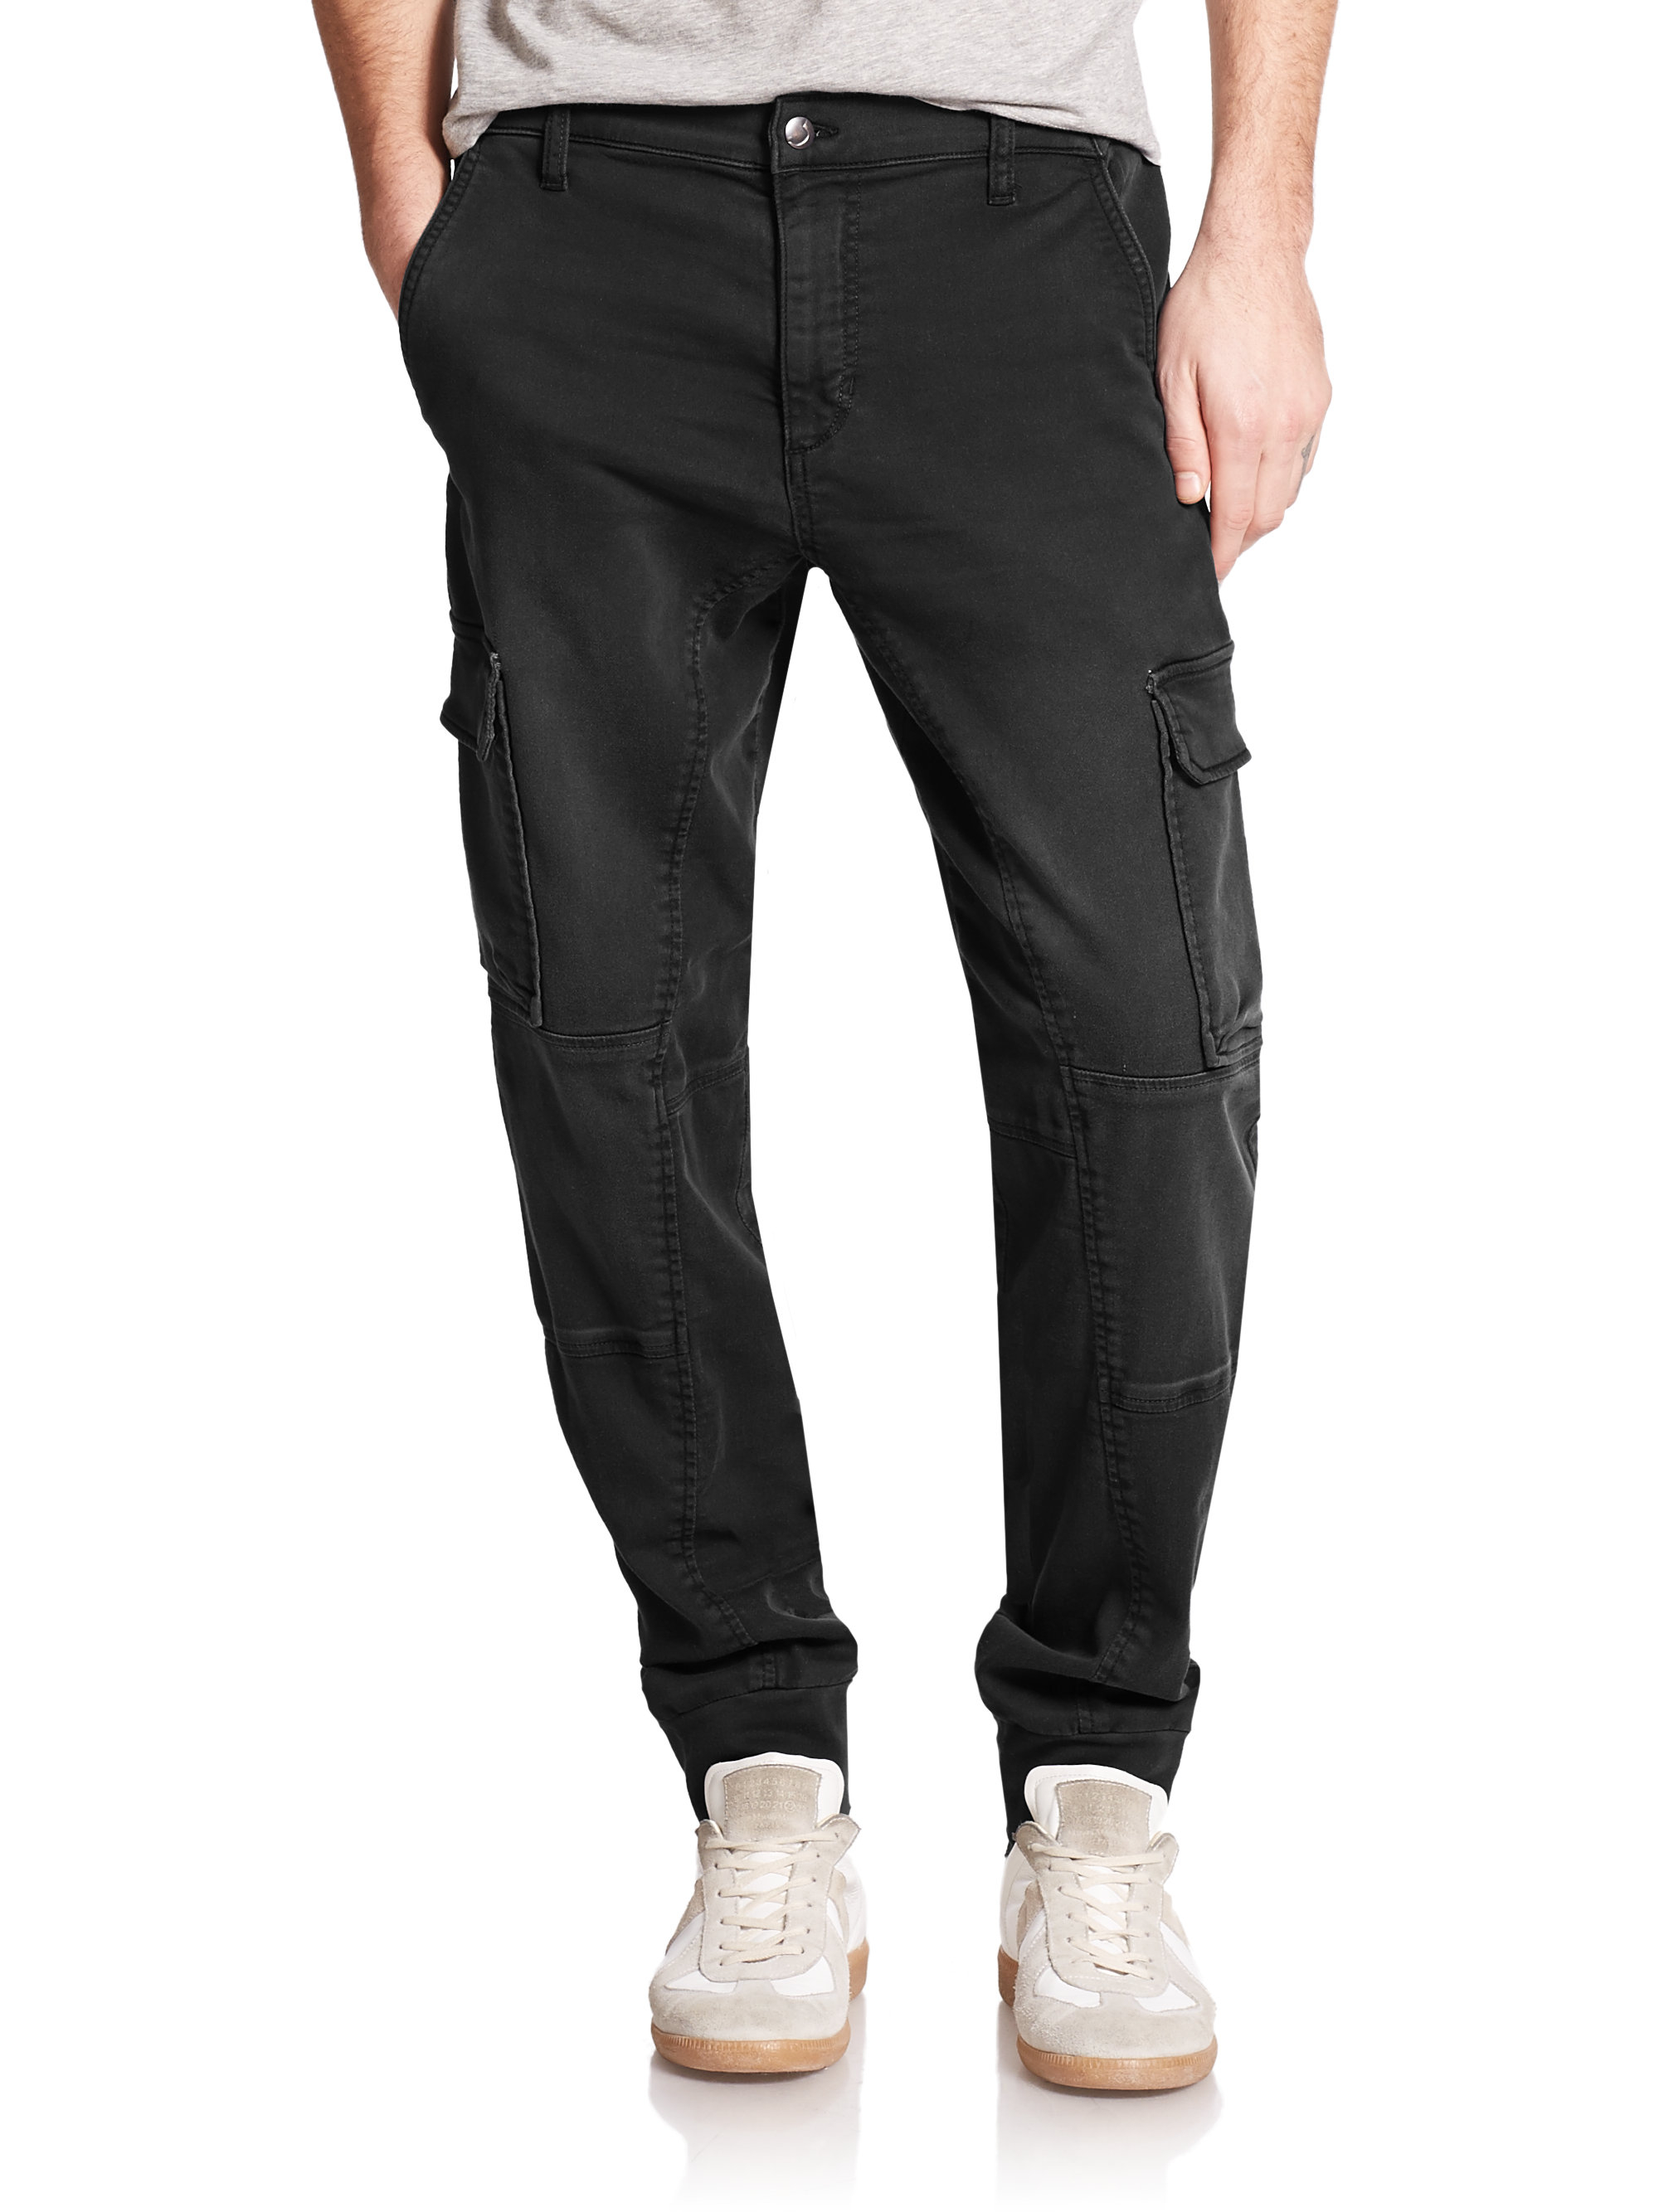 jomp16.tk: black jogger pants. From The Community. Slim fit jogger pants, slightly tapered legs with elasticized cuffs. Southpole Men's Basic Stretch Twill Jogger Pants, by Southpole. $ - $ $ 8 $ 34 40 Prime. FREE Shipping on eligible orders. Some sizes/colors are Prime eligible.